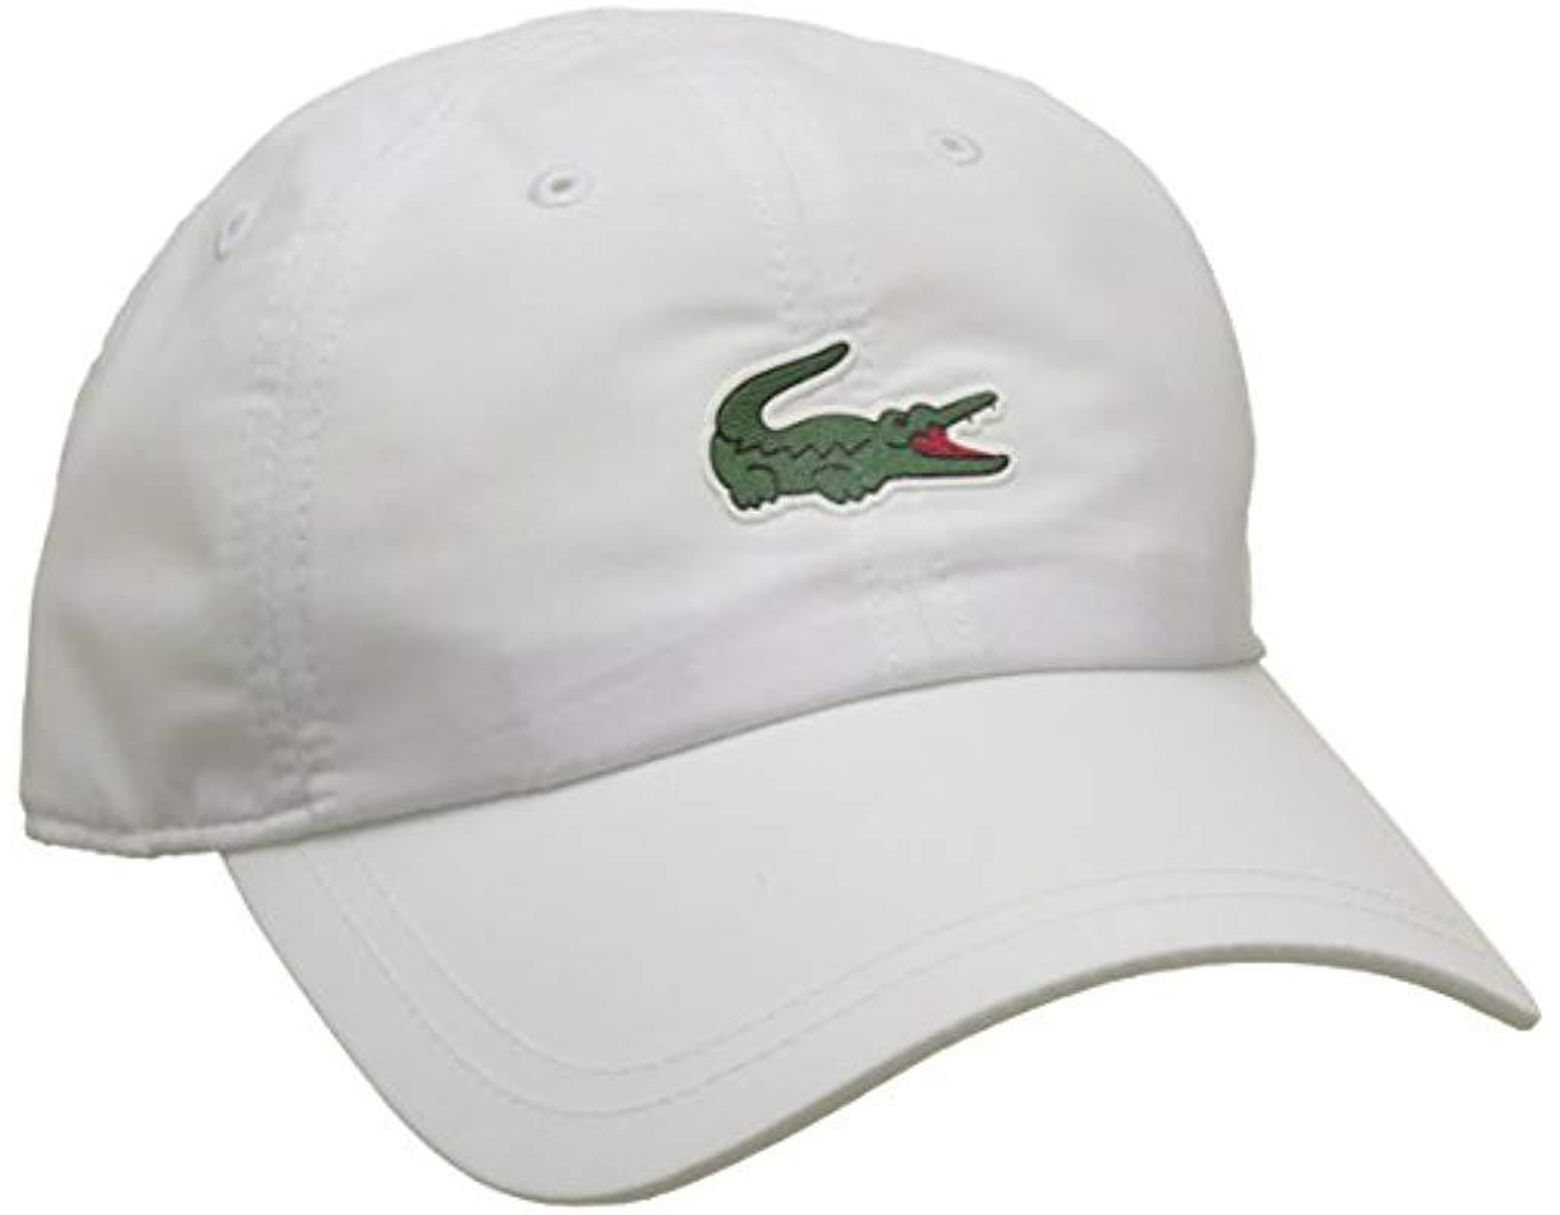 bc13f923 Lacoste Baseball Cap in White for Men - Save 8% - Lyst